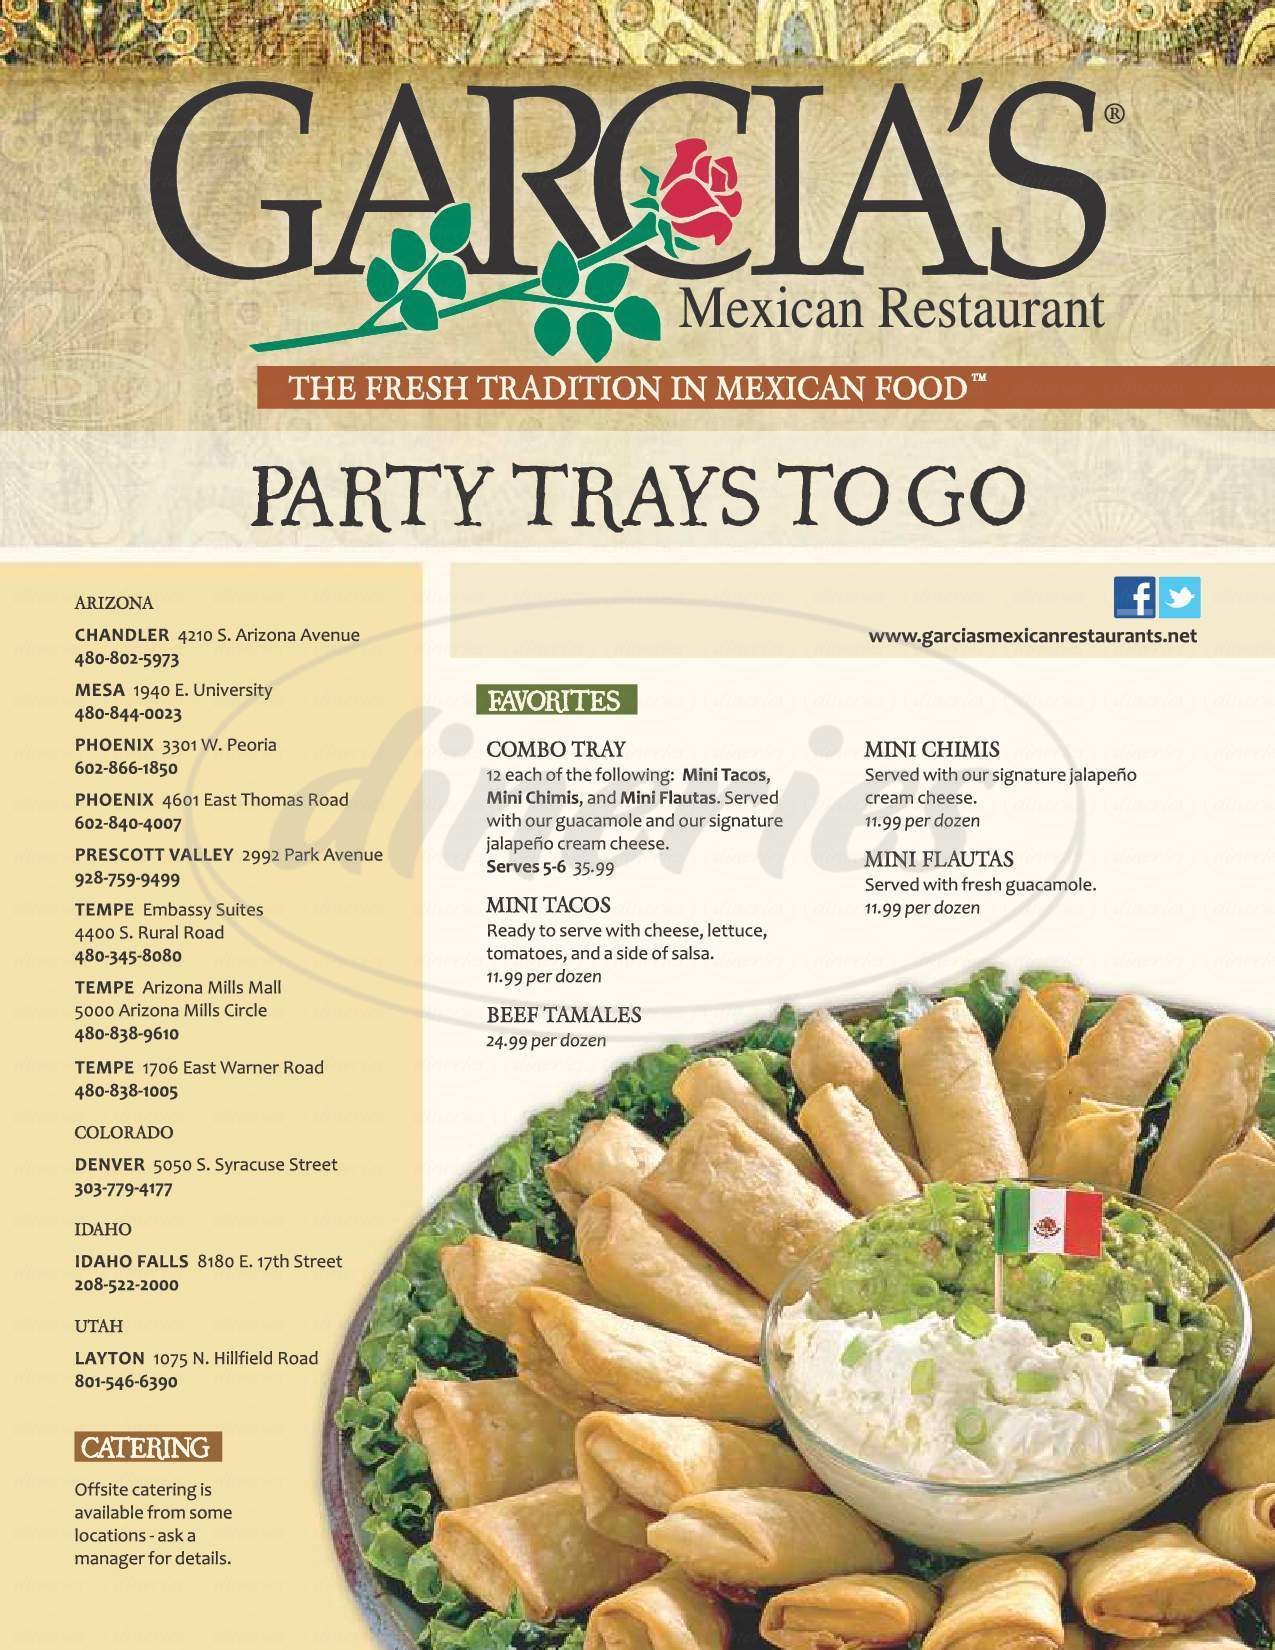 menu for Garcia's Mexican Restaurant